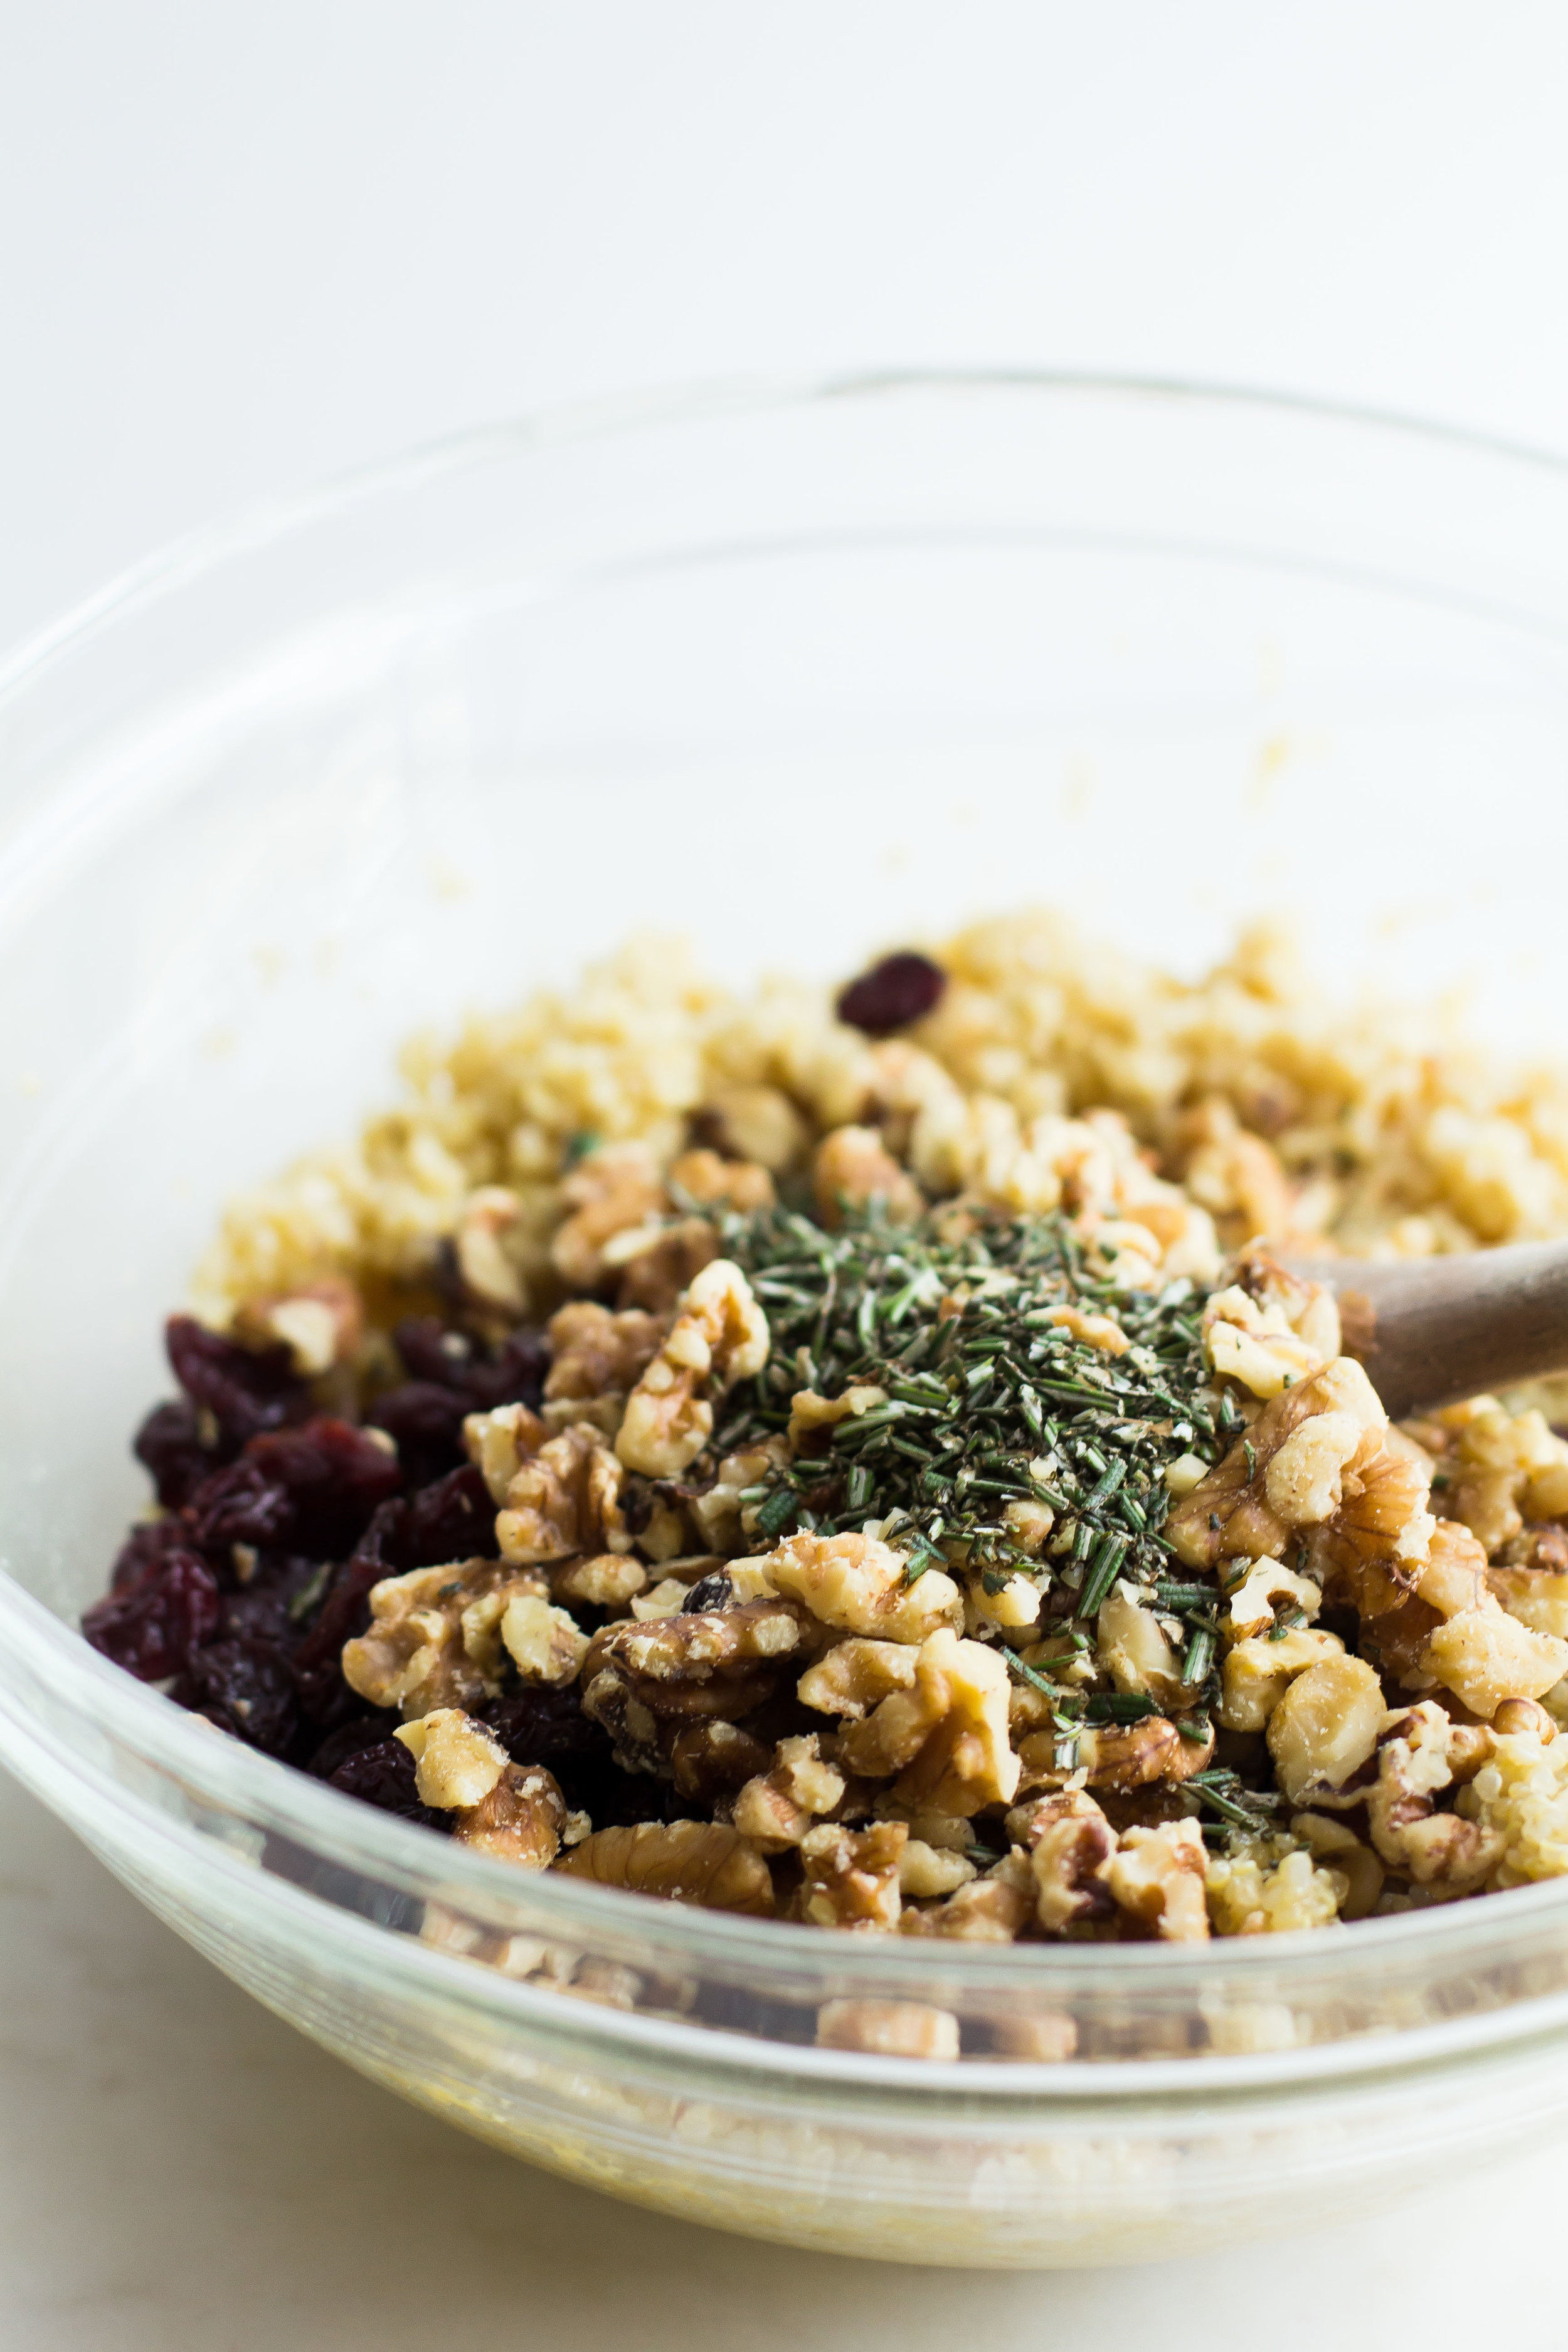 Rosemary Quinoa Salad with Walnuts + Cherries - Sarah J. Hauser